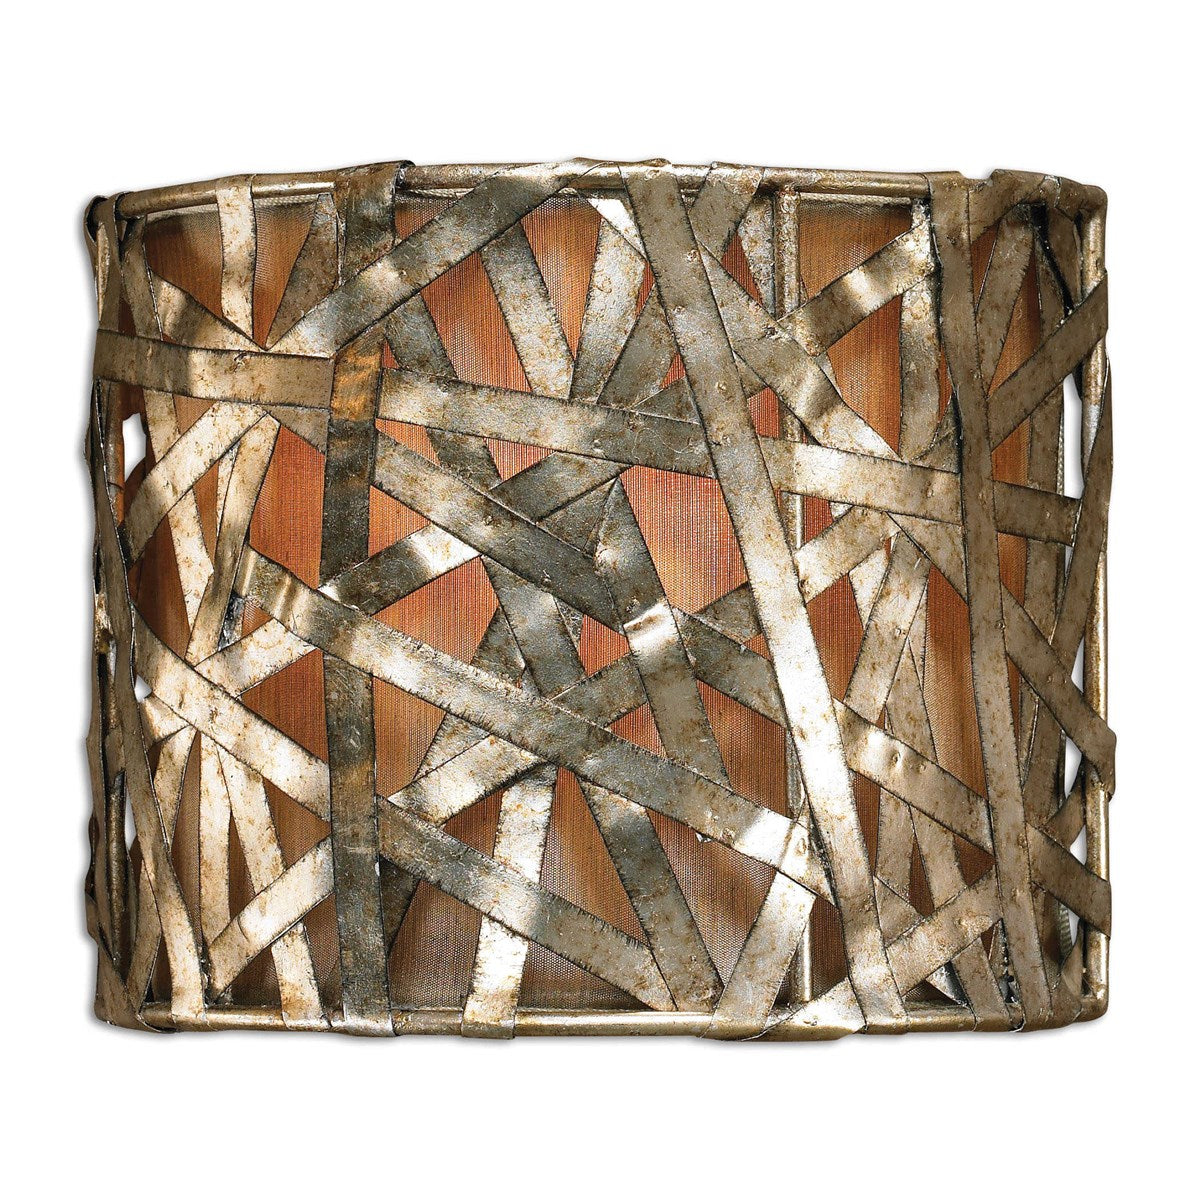 Alita Champagne Metal Sconce - 9-in